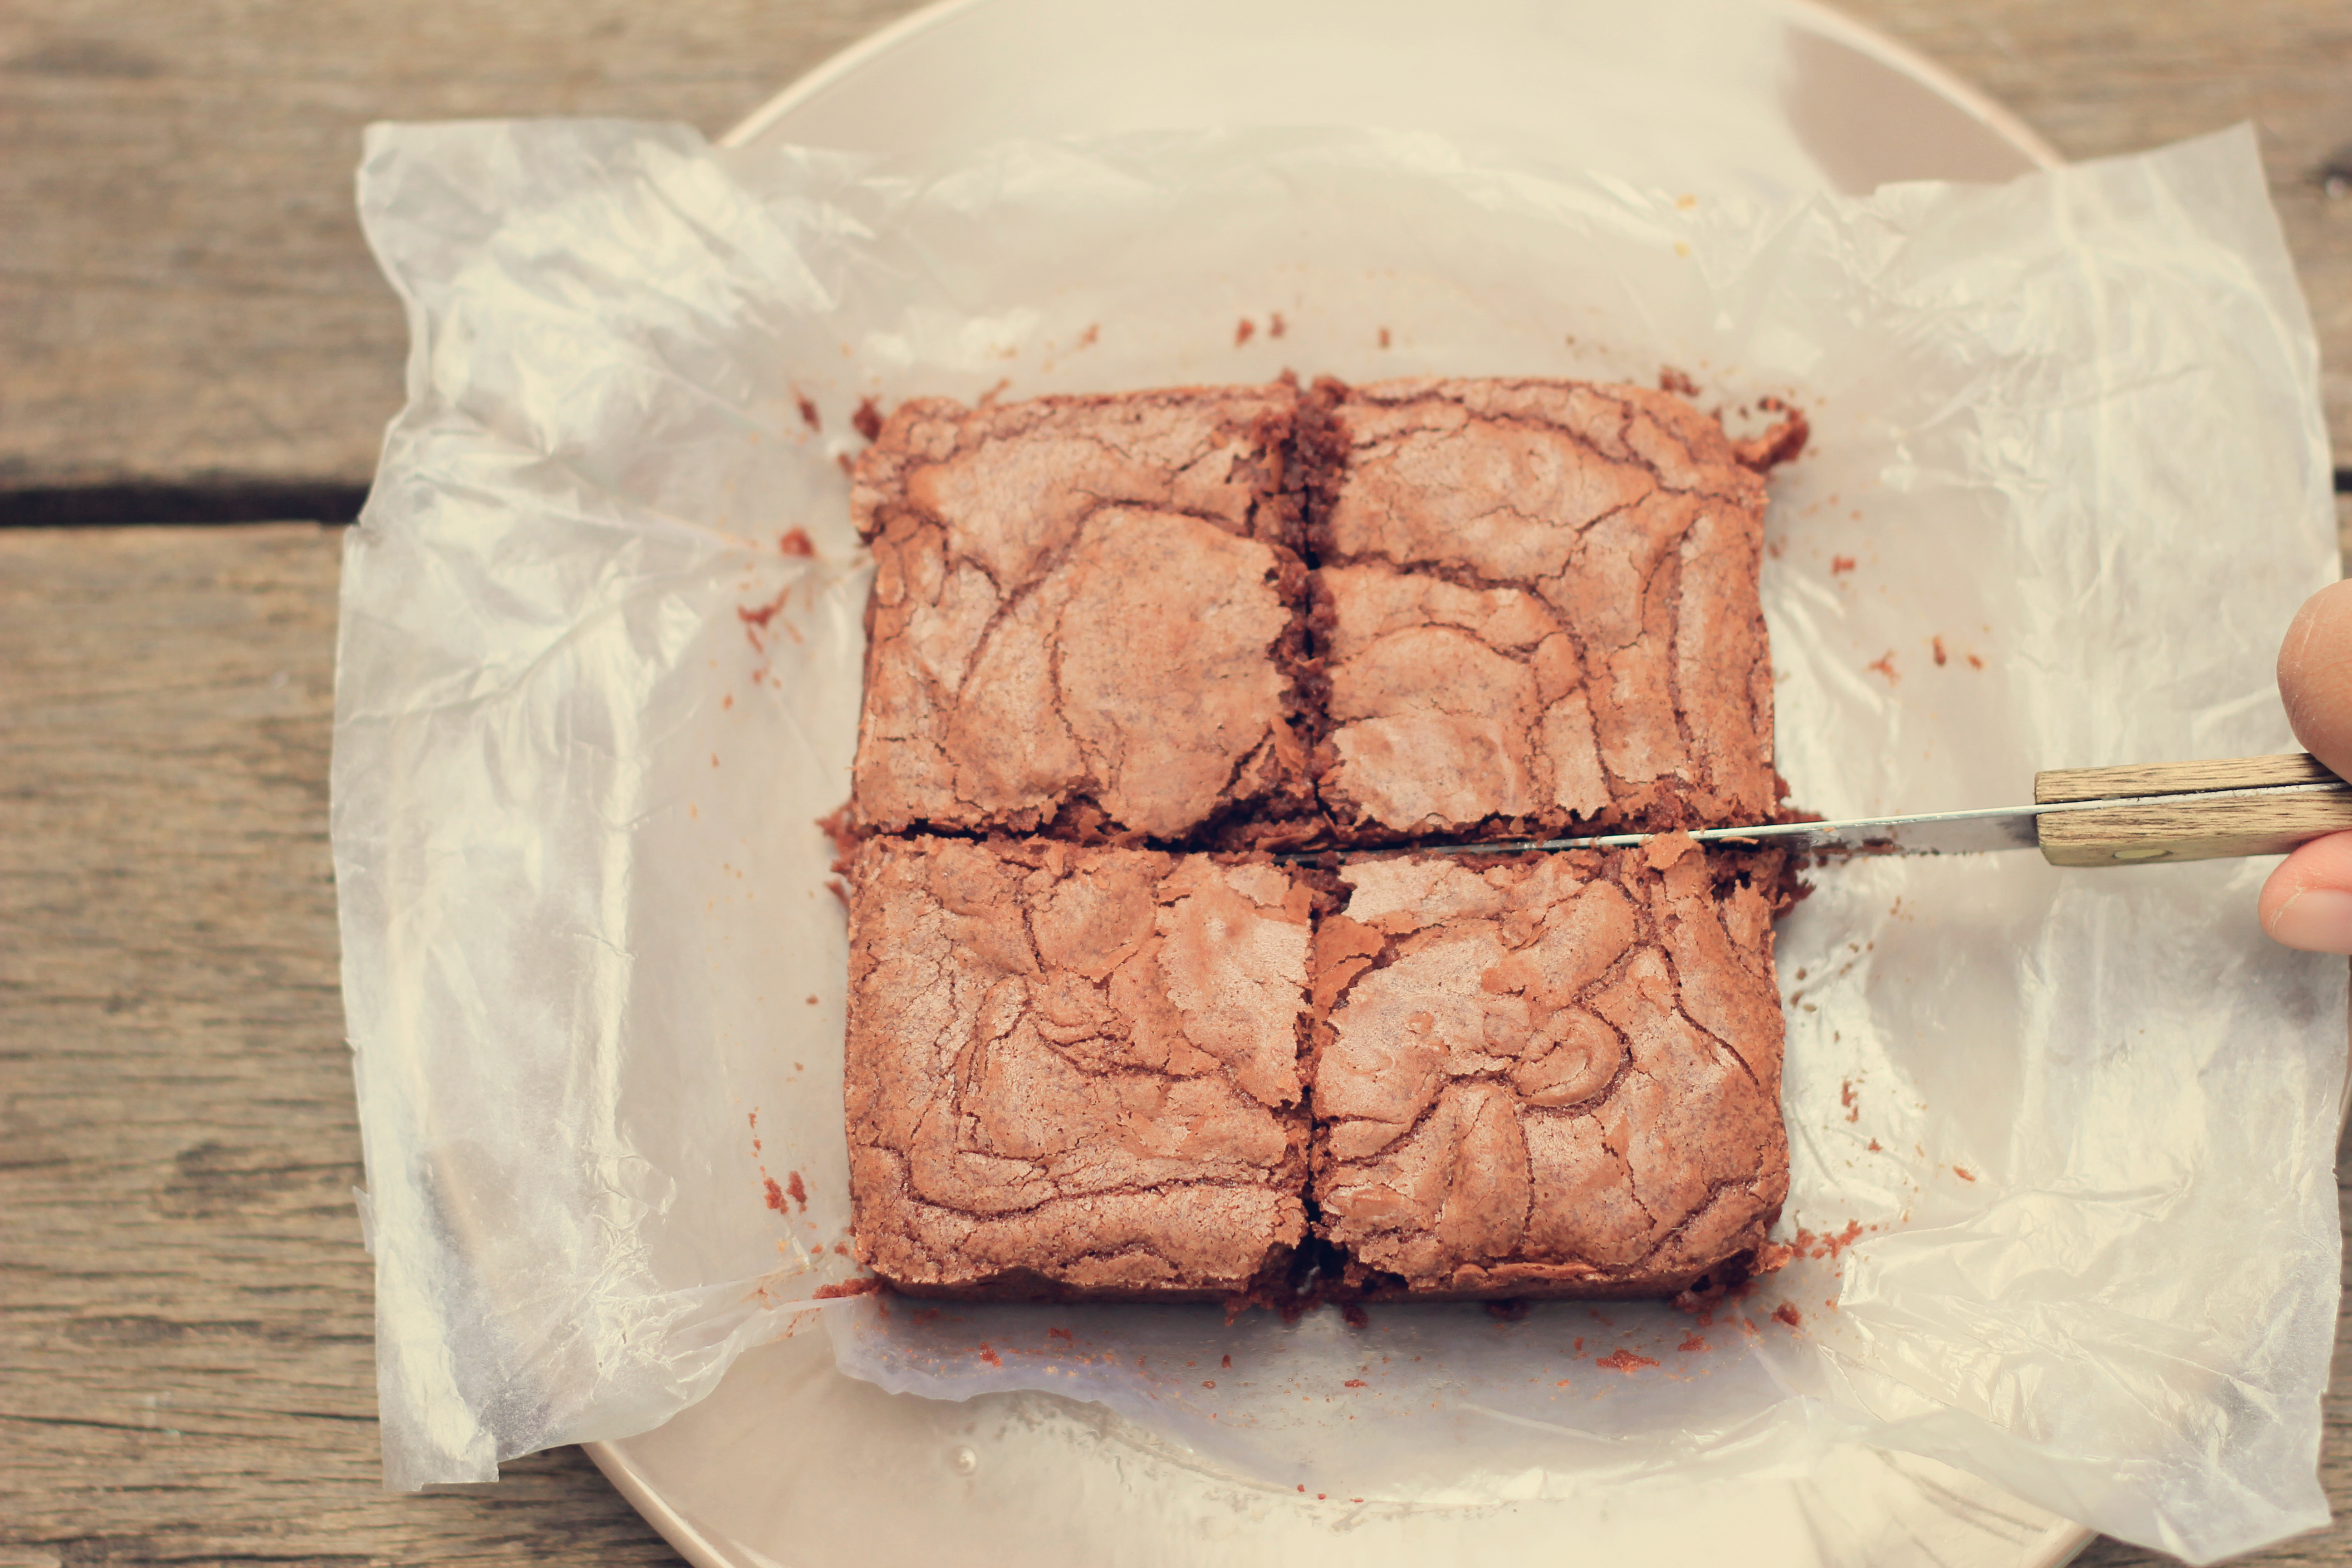 Cutting crispy homemade brownie with retro filter effect